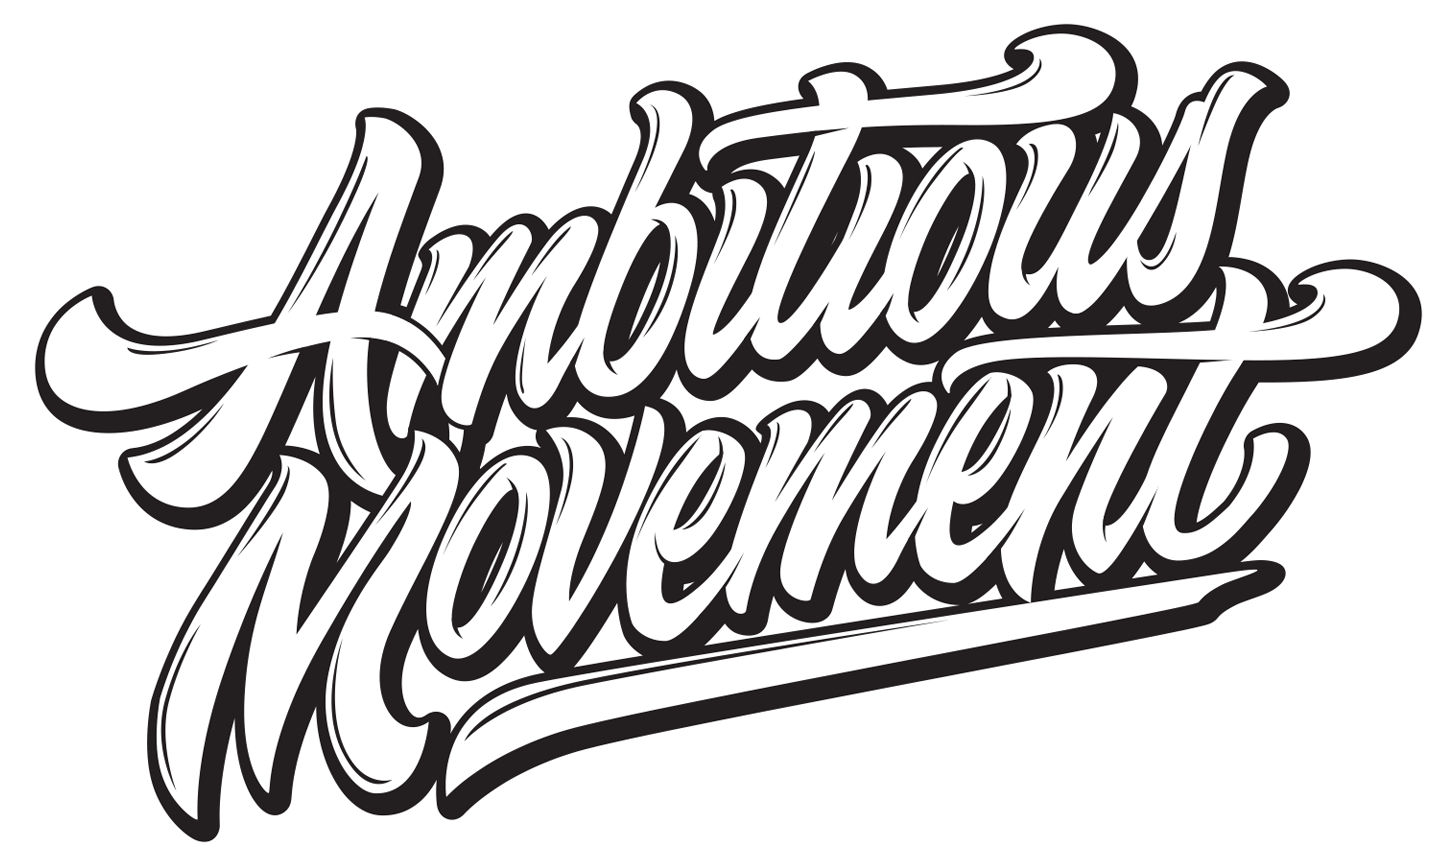 Ambitious Movement